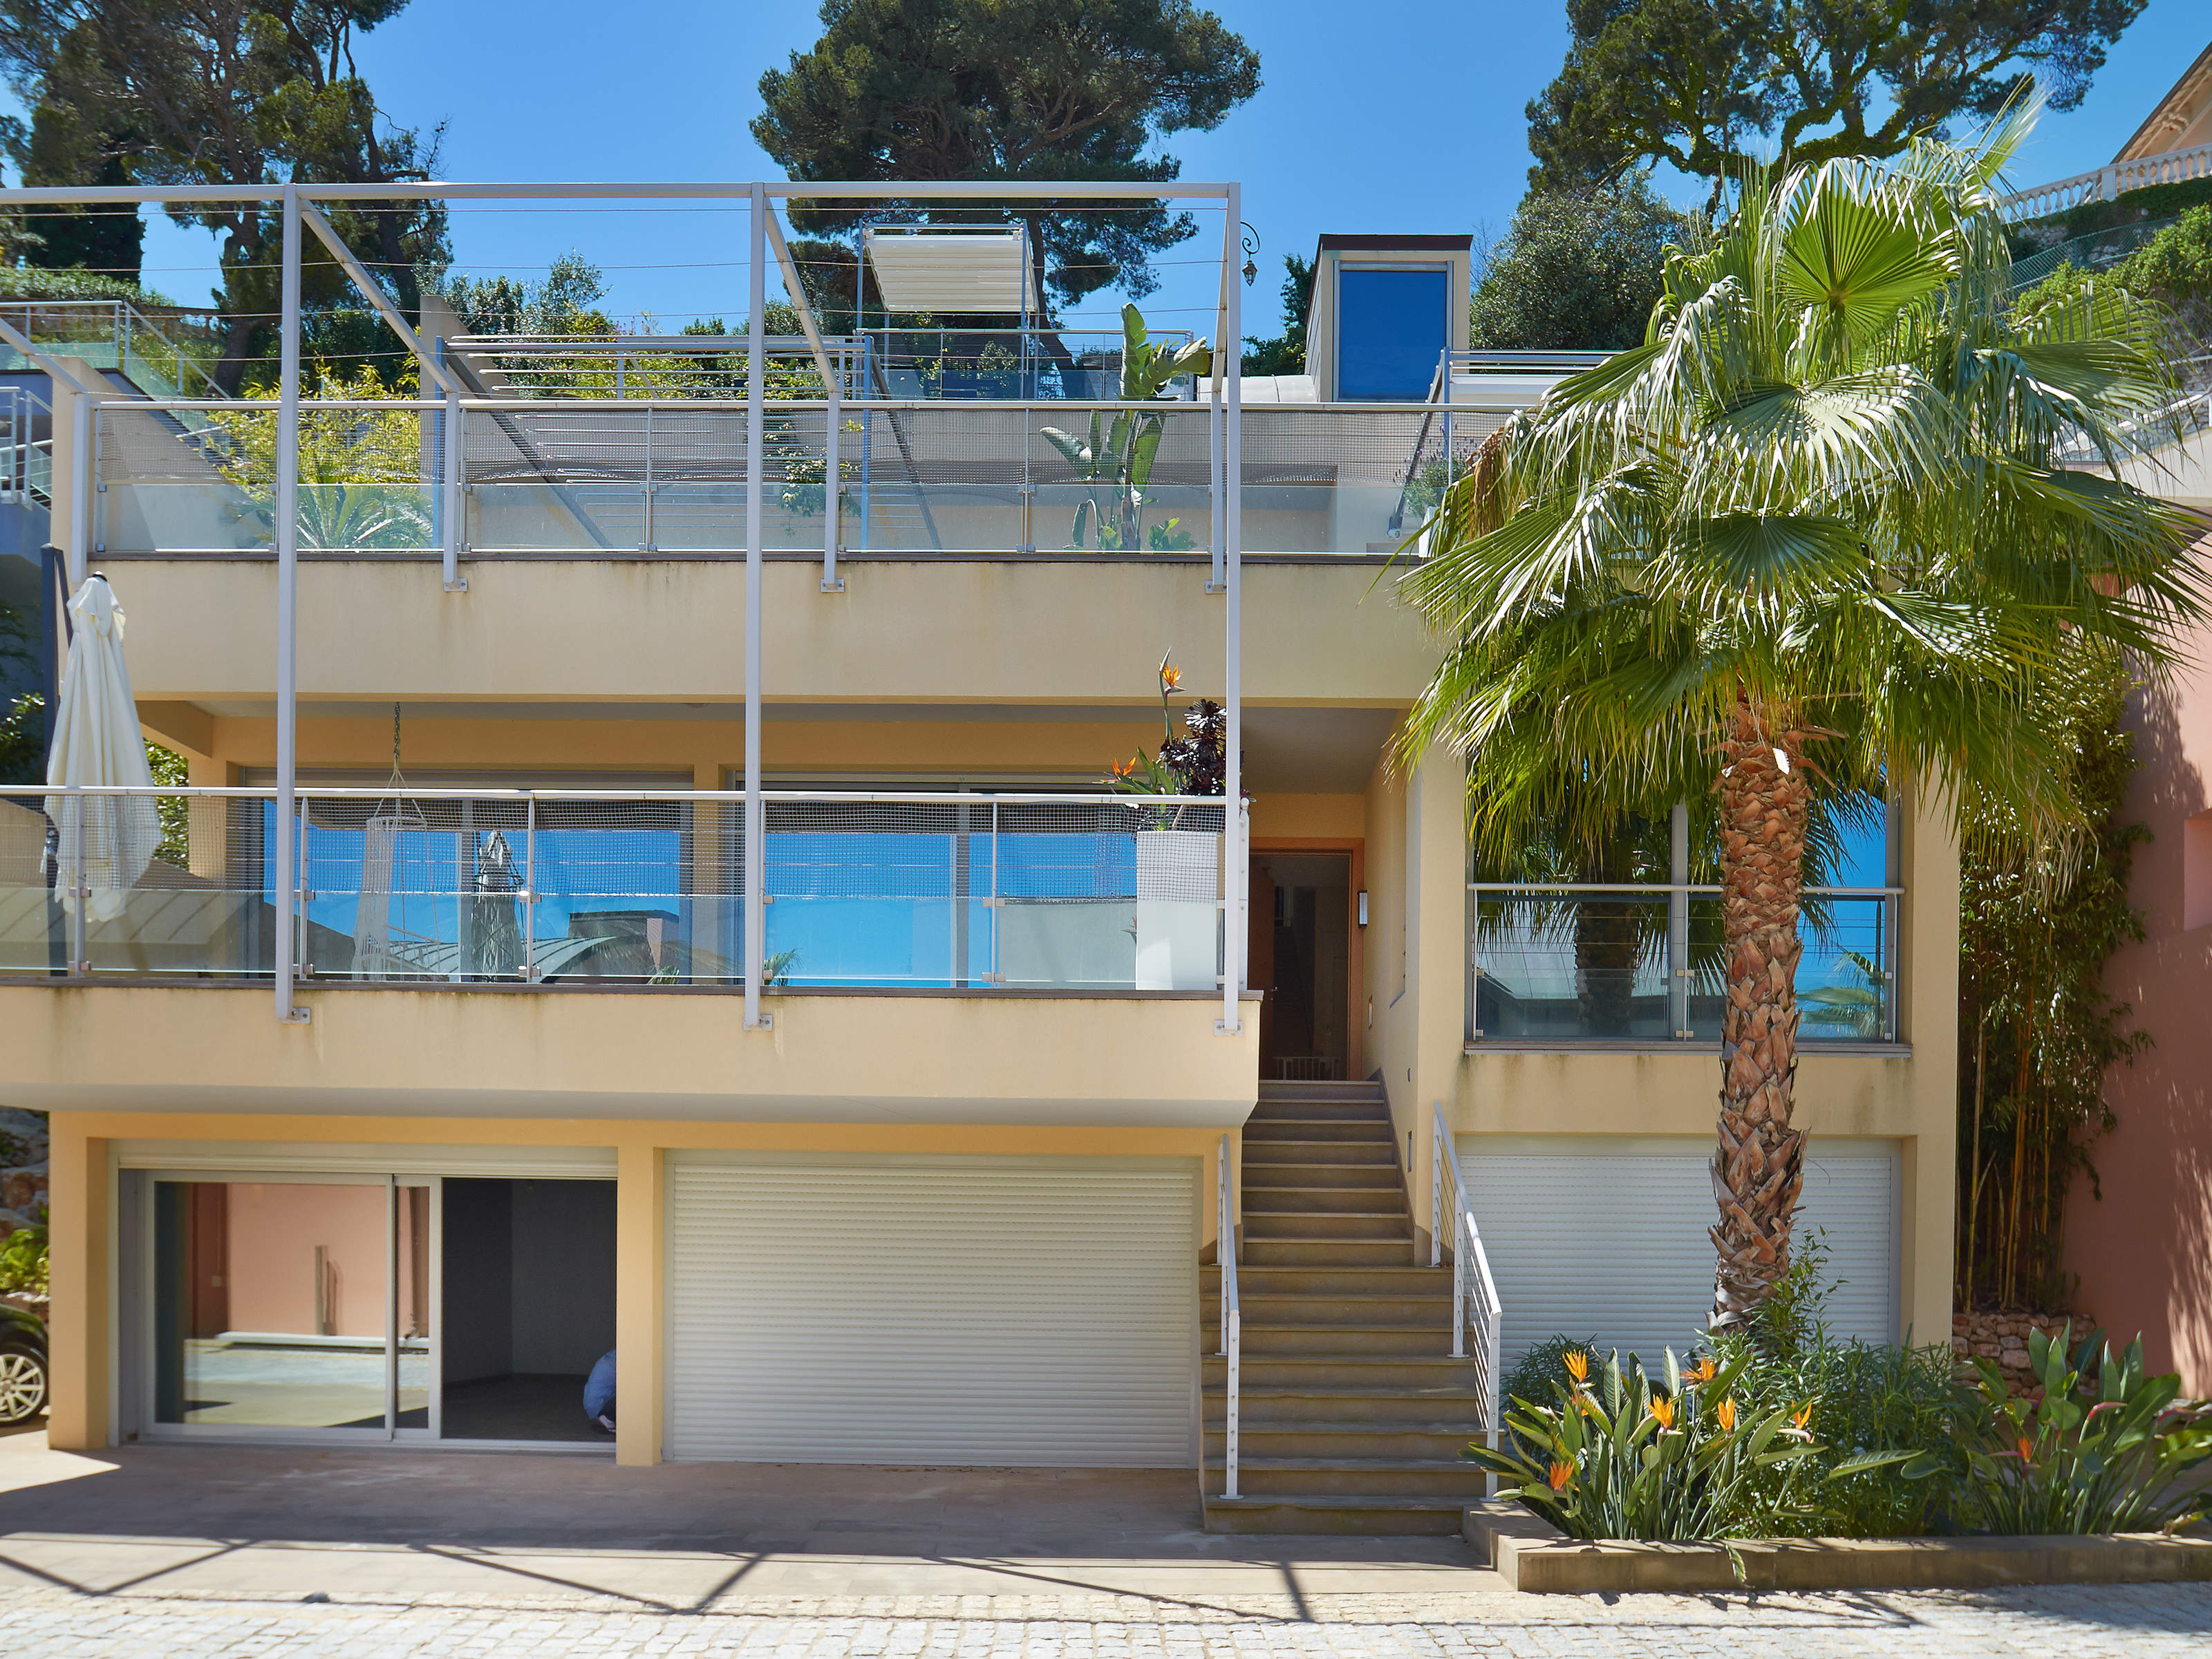 独户住宅 为 出租 在 Contemporary design villa in the heart of Saint Jean Cap Ferrat Saint Jean Cap Ferrat, 普罗旺斯阿尔卑斯蓝色海岸 06230 法国